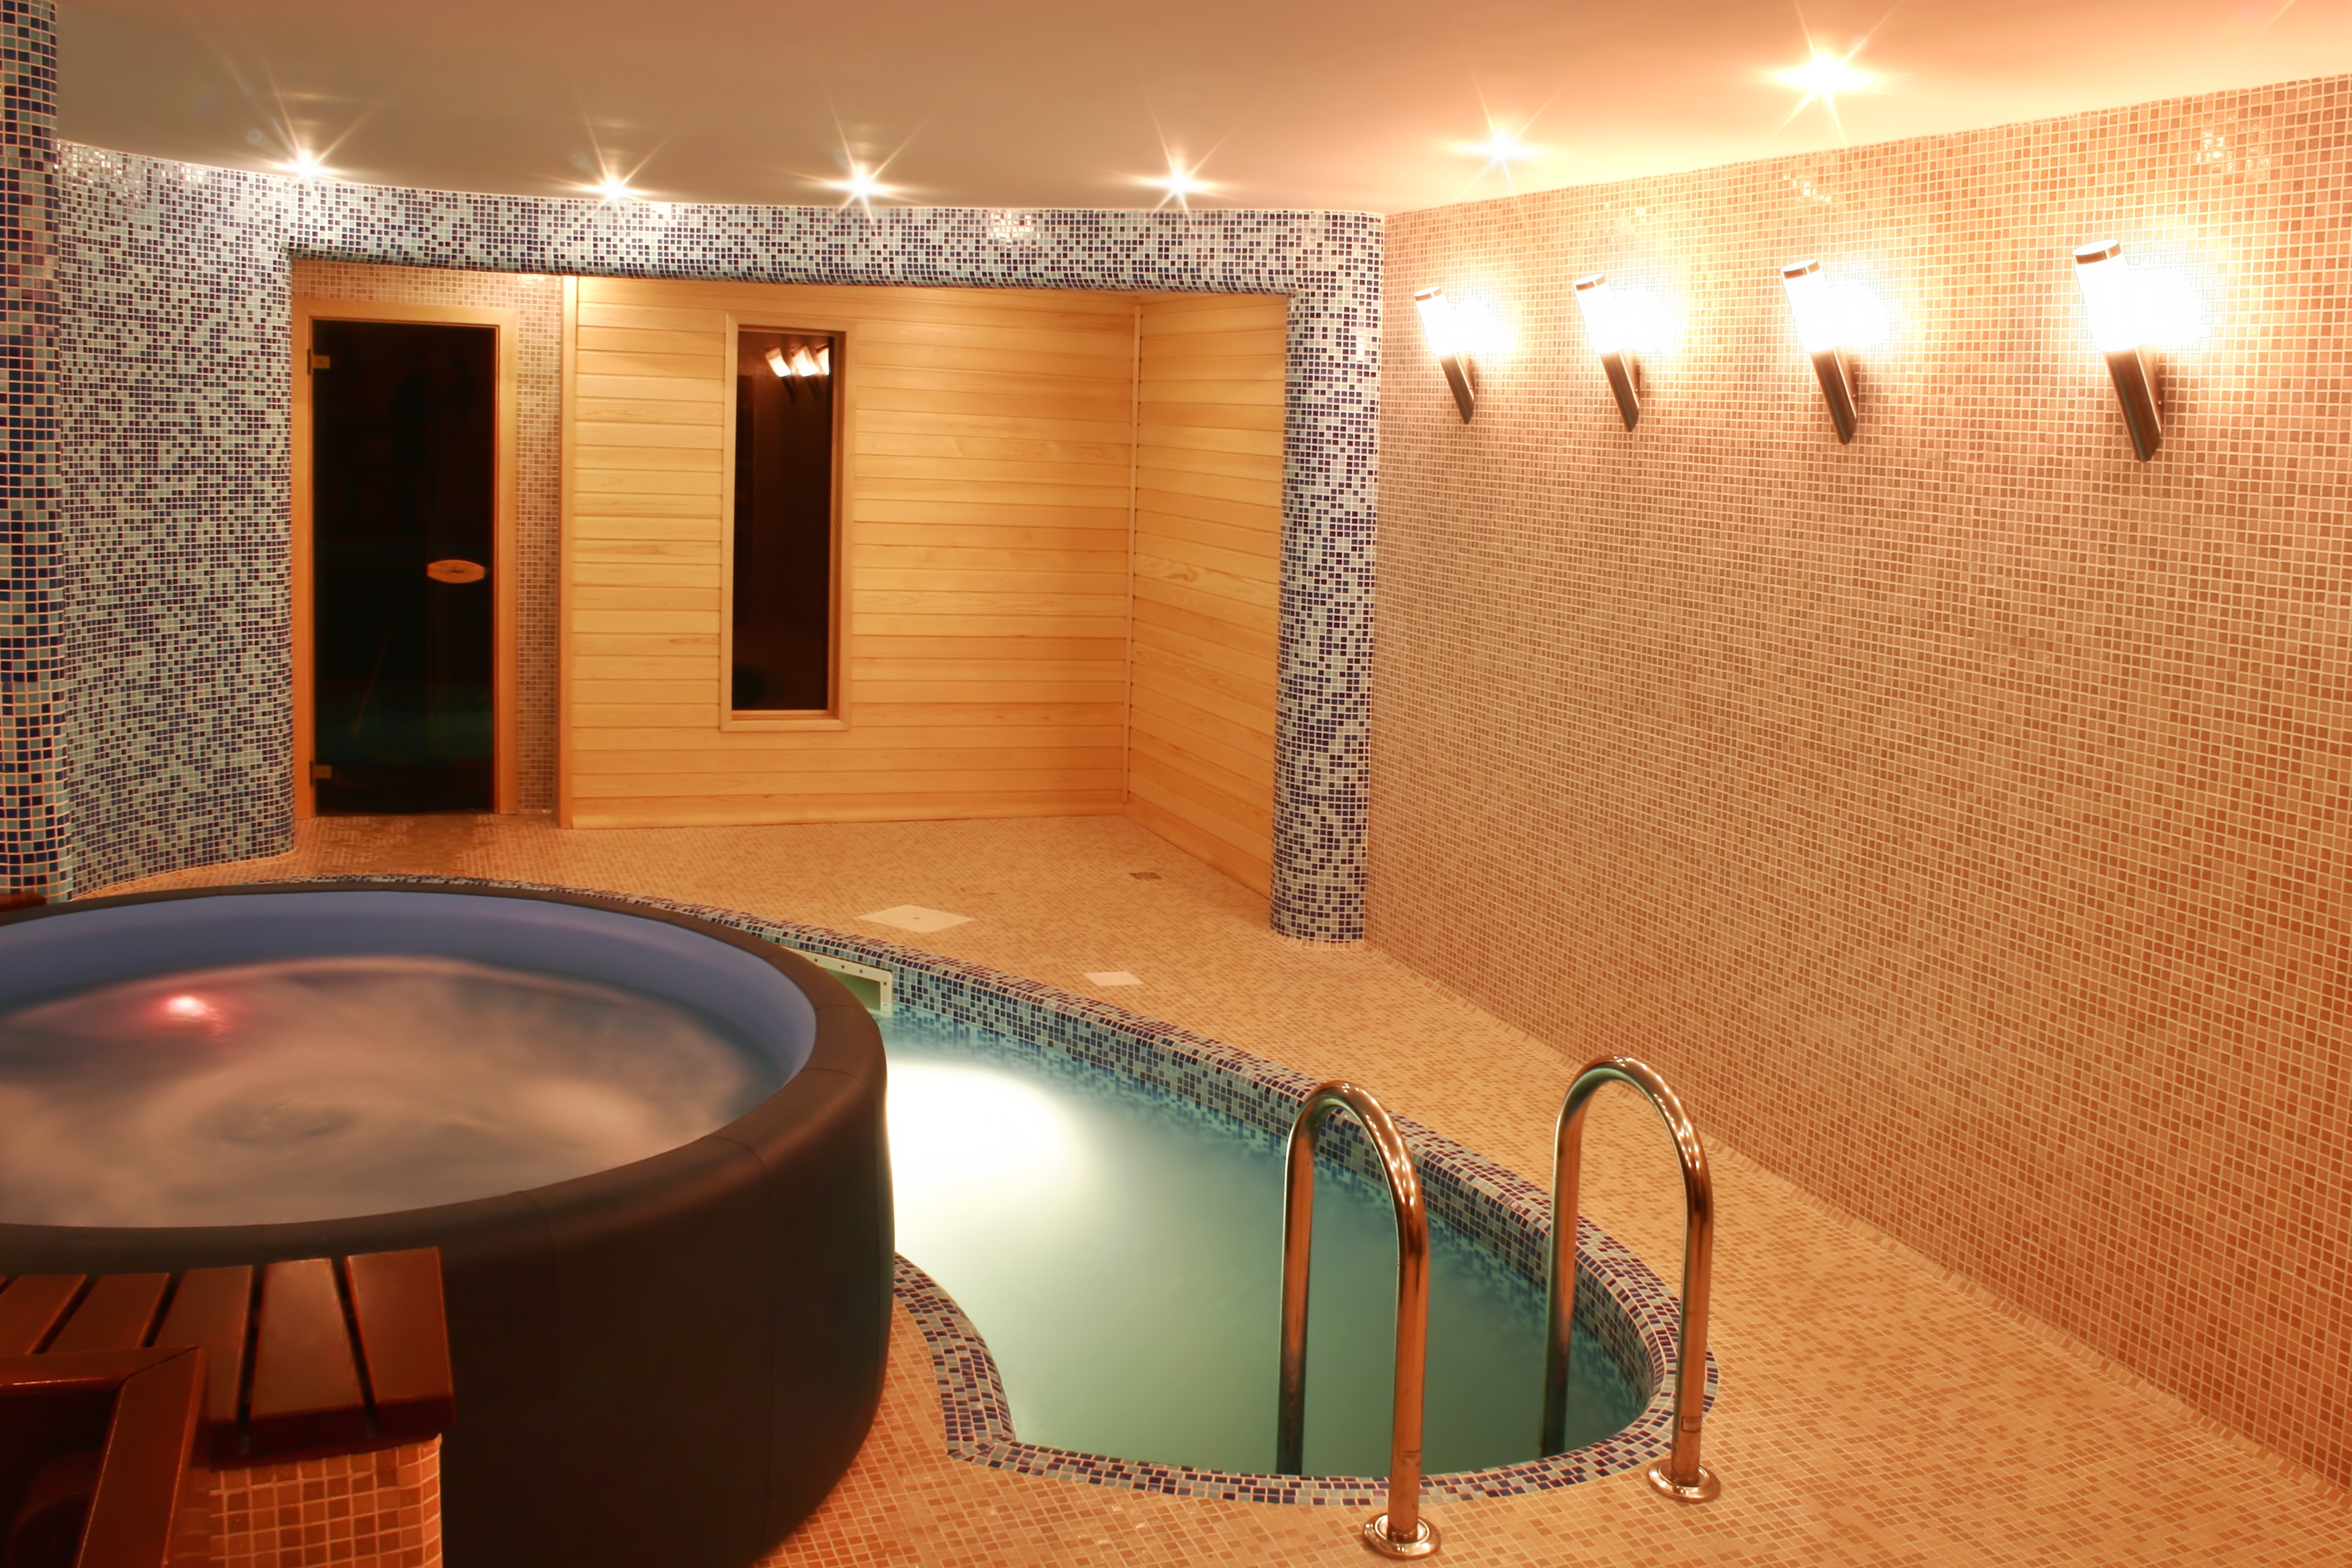 spa and sauna installation french riviera | Home-Hunts Luxury Search ...